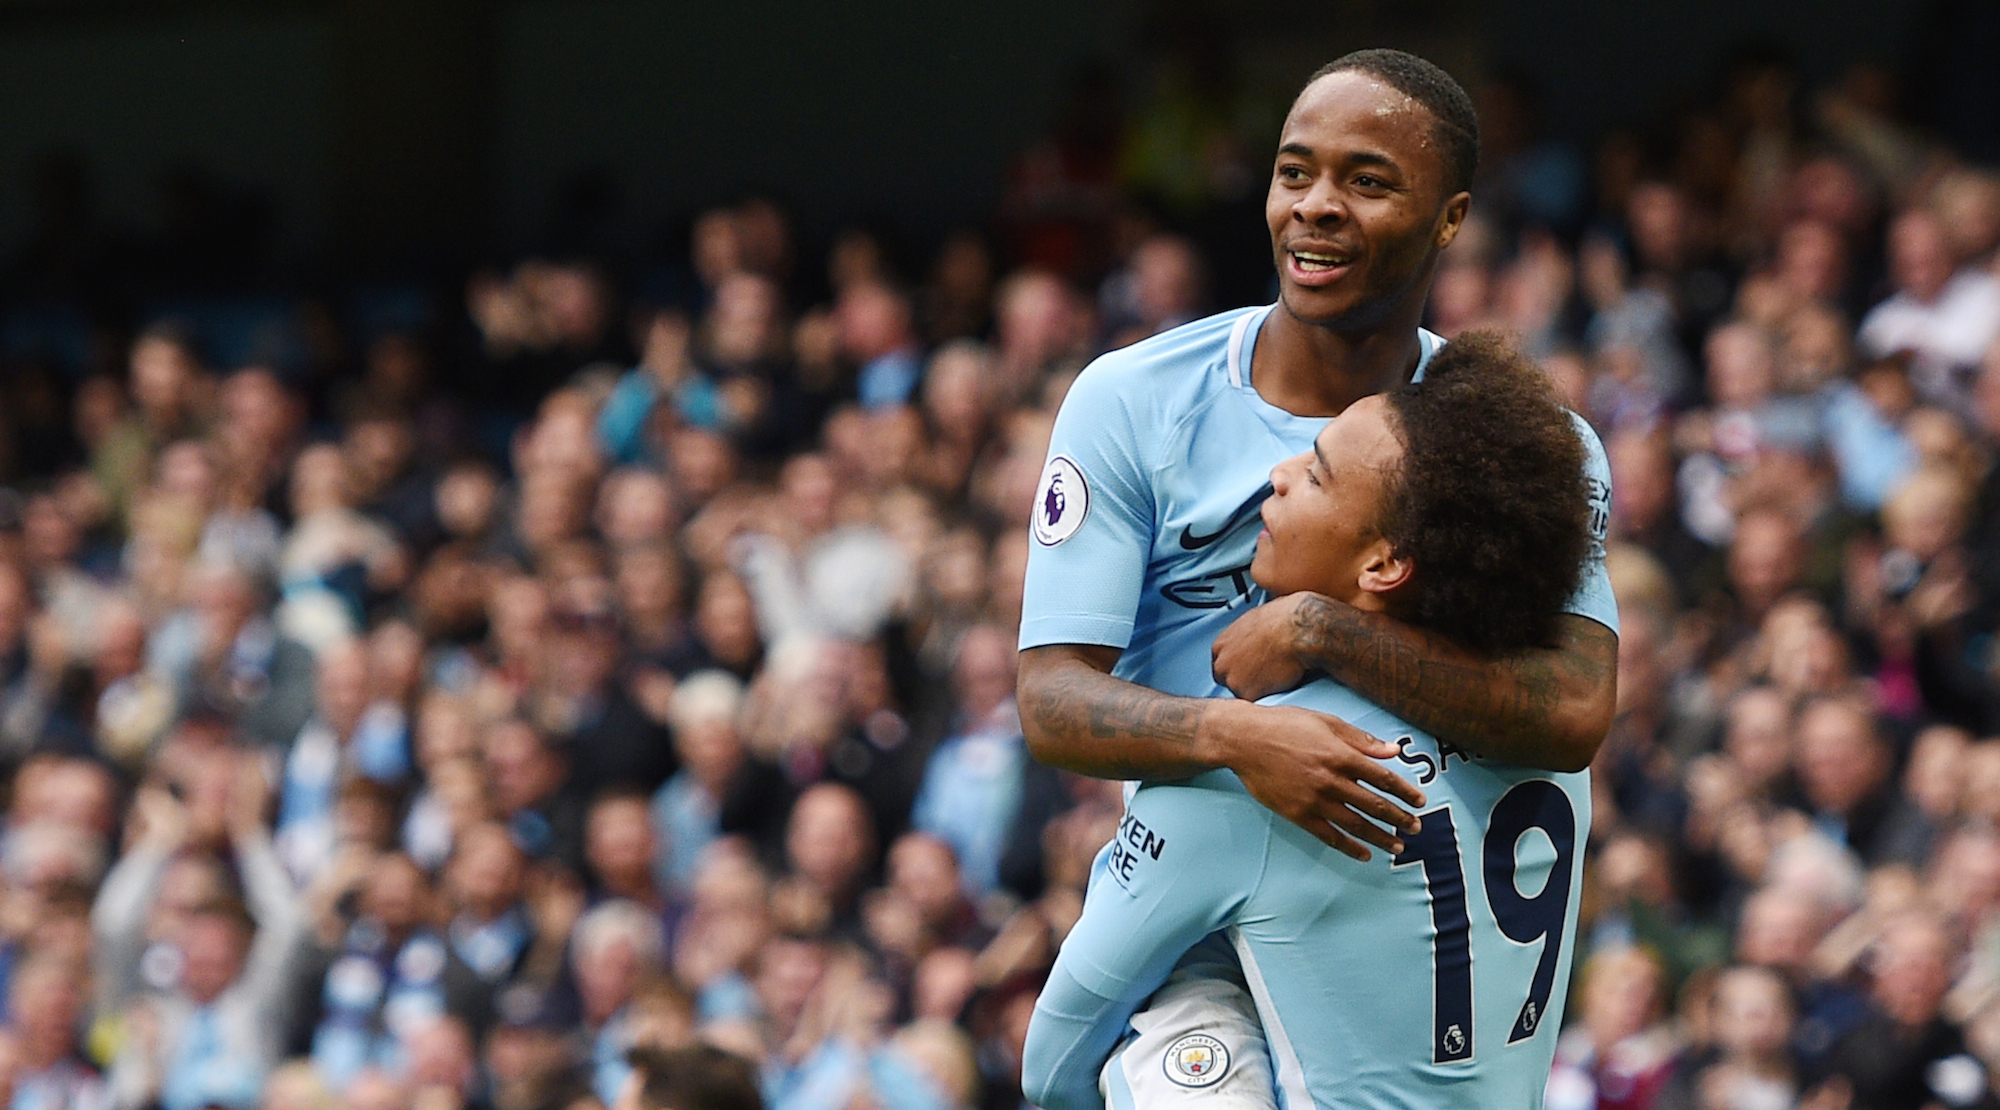 Manchester City's English midfielder Raheem Sterling (L) celebrates after scoring with Manchester City's German midfielder Leroy Sane during the English Premier League football match between Manchester City and Crystal Palace at the Etihad Stadium in Manchester, north west England, on September 23, 2017. / AFP PHOTO / Oli SCARFF / RESTRICTED TO EDITORIAL USE. No use with unauthorized audio, video, data, fixture lists, club/league logos or 'live' services. Online in-match use limited to 75 images, no video emulation. No use in betting, games or single club/league/player publications. / (Photo credit should read OLI SCARFF/AFP/Getty Images)